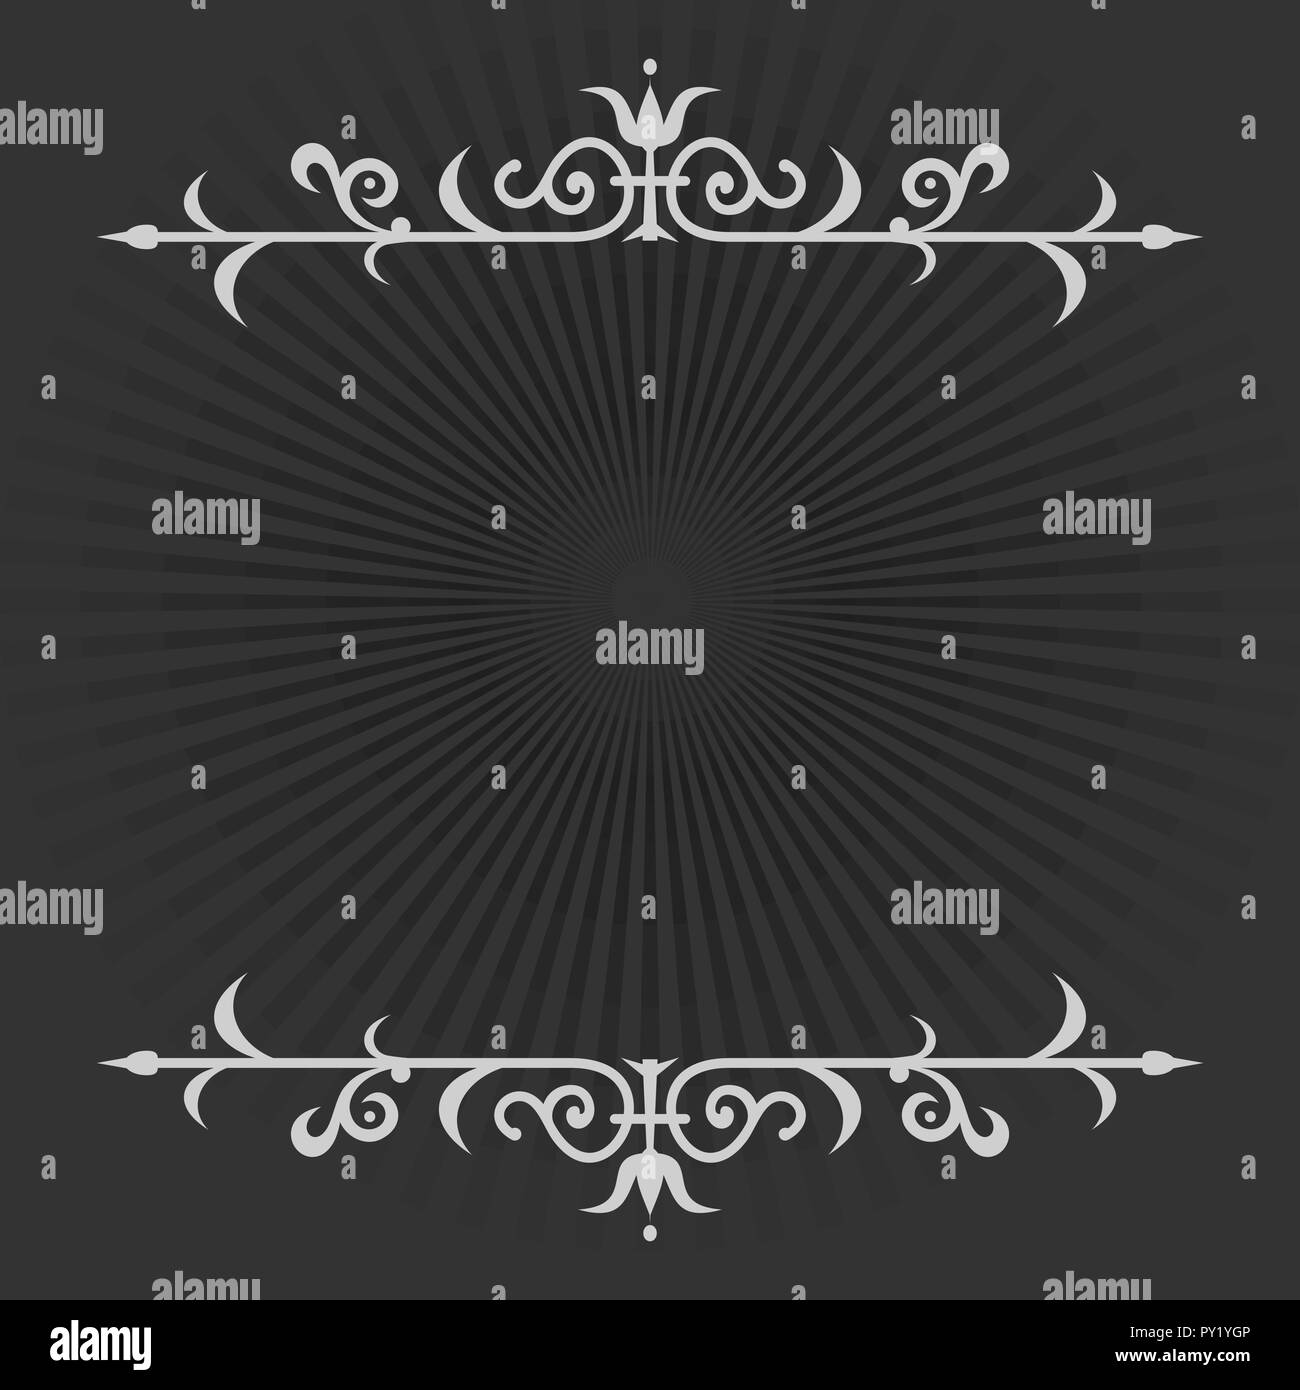 Vignette on a black and white retro background in silent film style. Calligraphic design element. Old movie vintage style. Vector illustration - Stock Vector